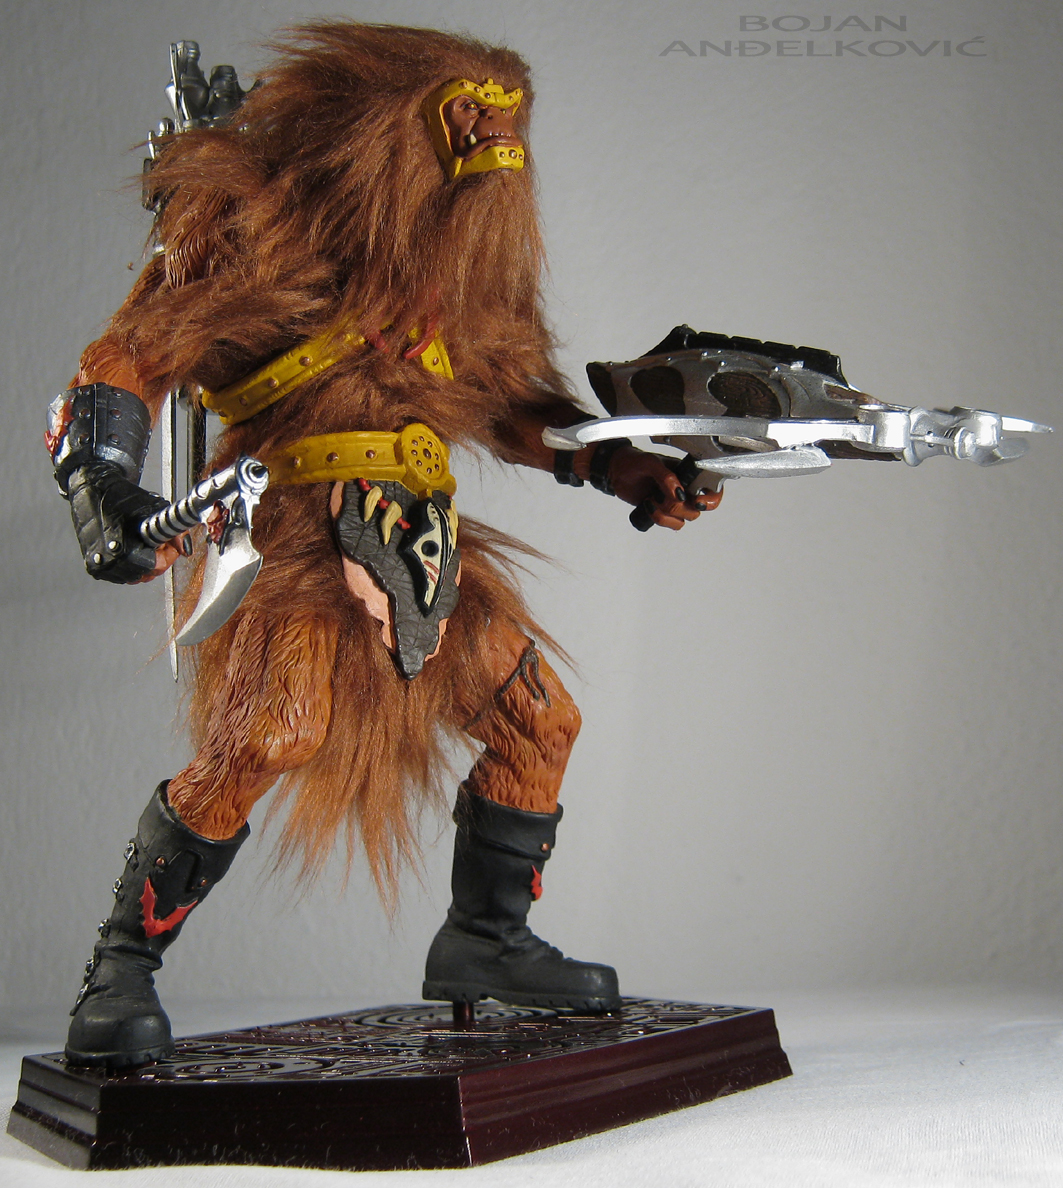 He Man Org Gt Bust And Statues Gt Mini Statues Gt Grizzlor